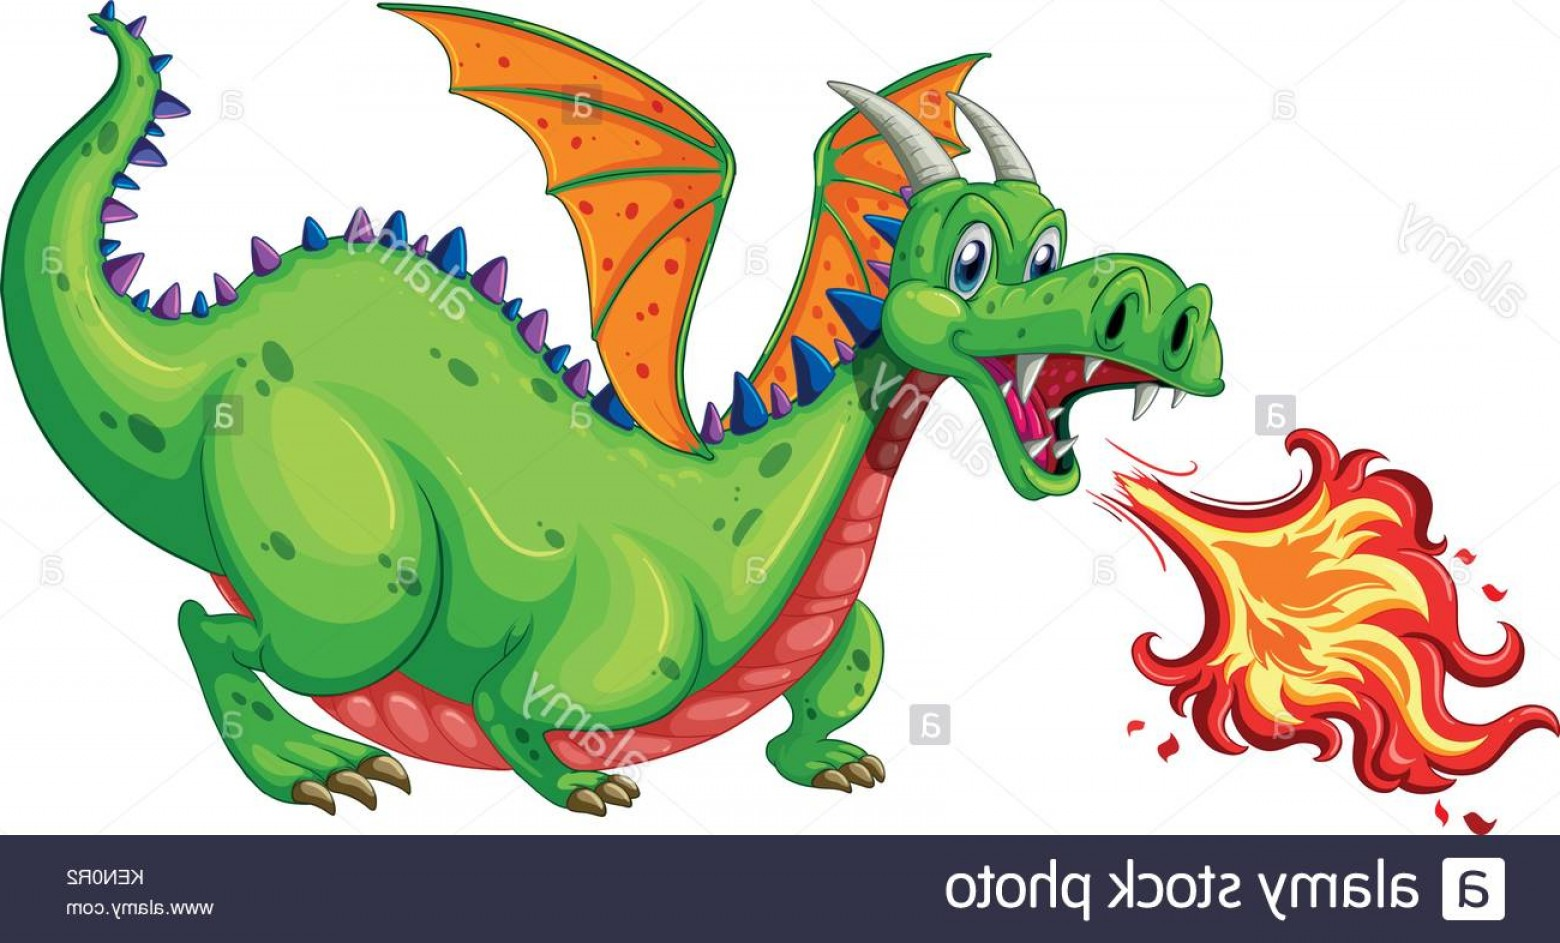 Dragon Fire Vector: Stock Photo Illustration Of A Dragon Blowing Fire